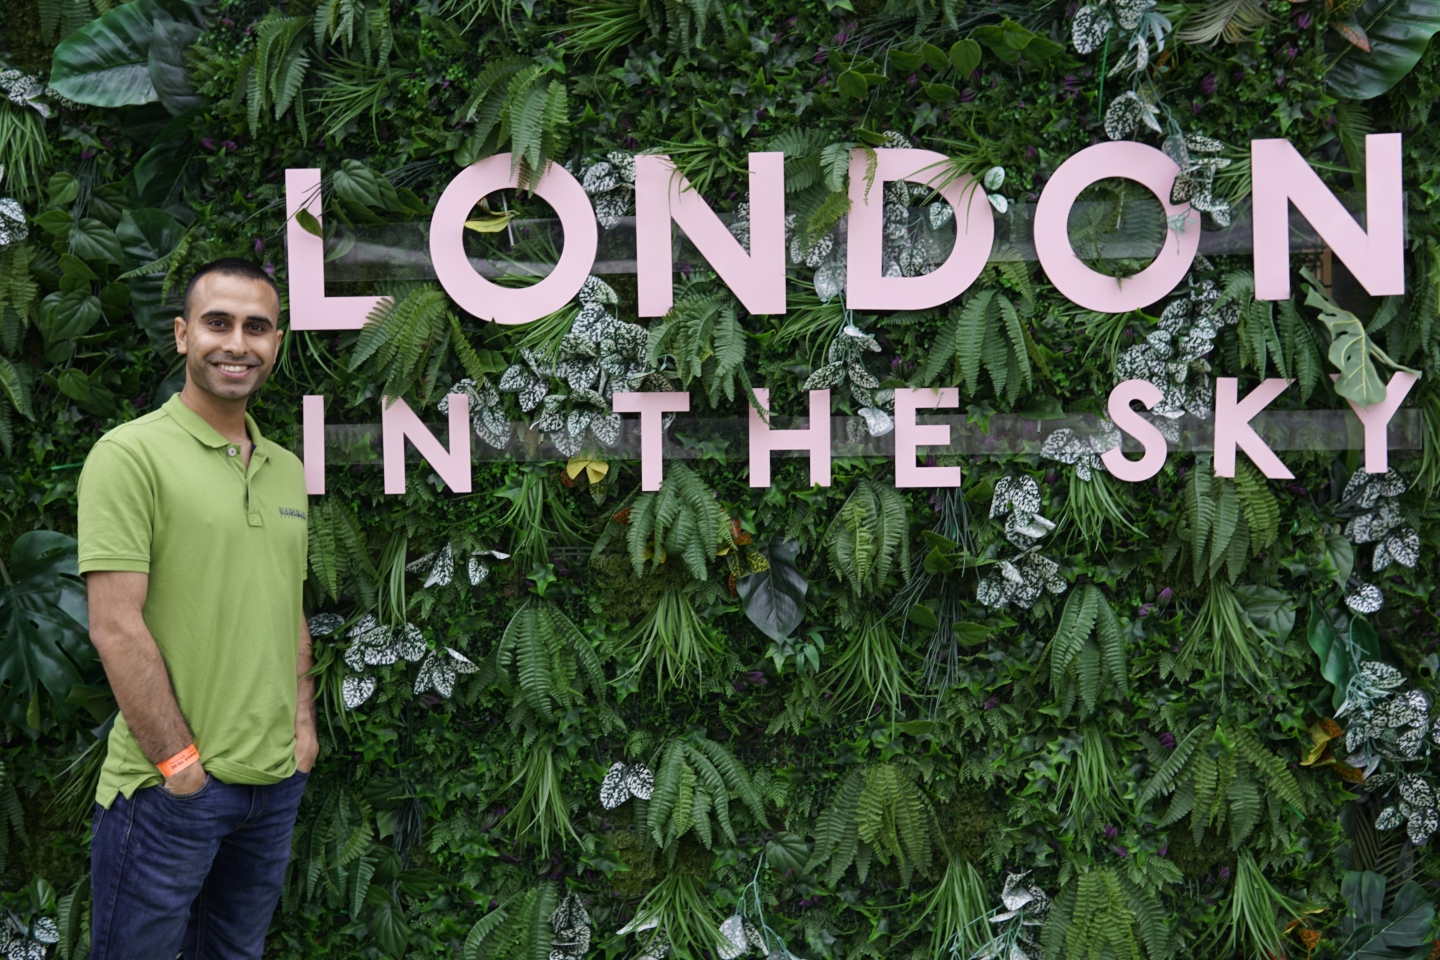 Adil Musa alongside the London in the Sky Sign